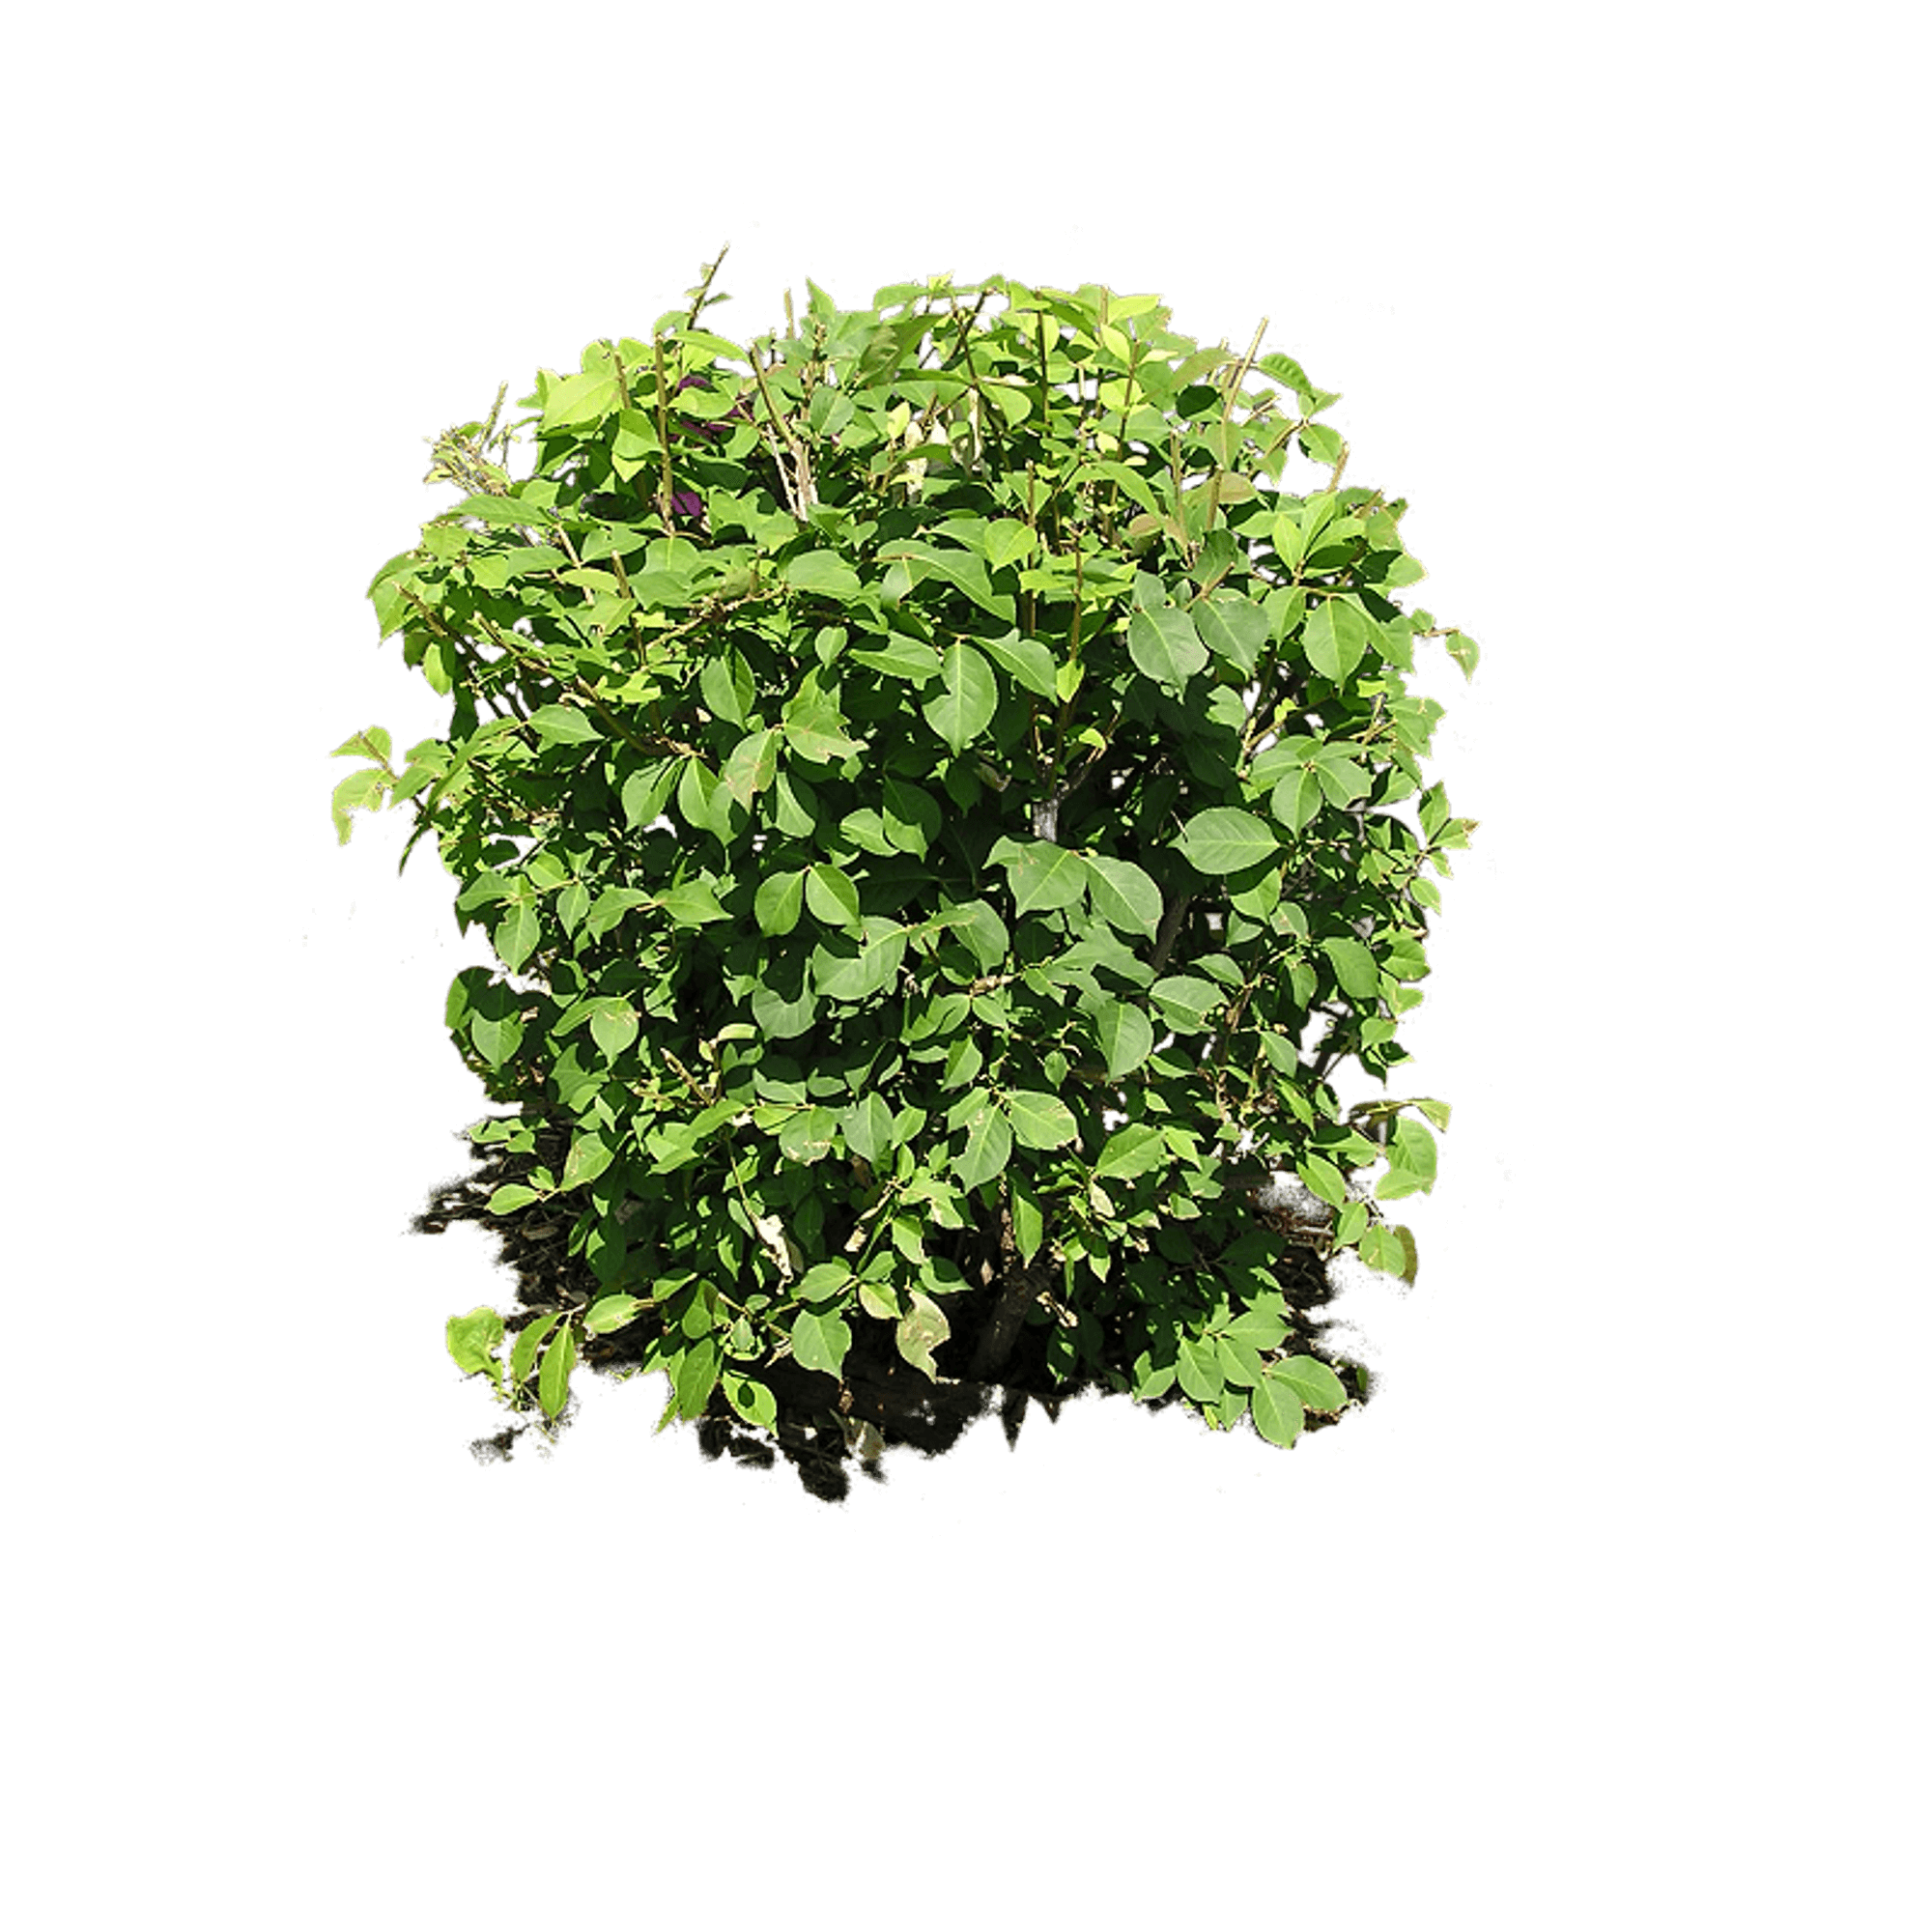 Small clipart shrub Image Plant Download Png FreePNGImg